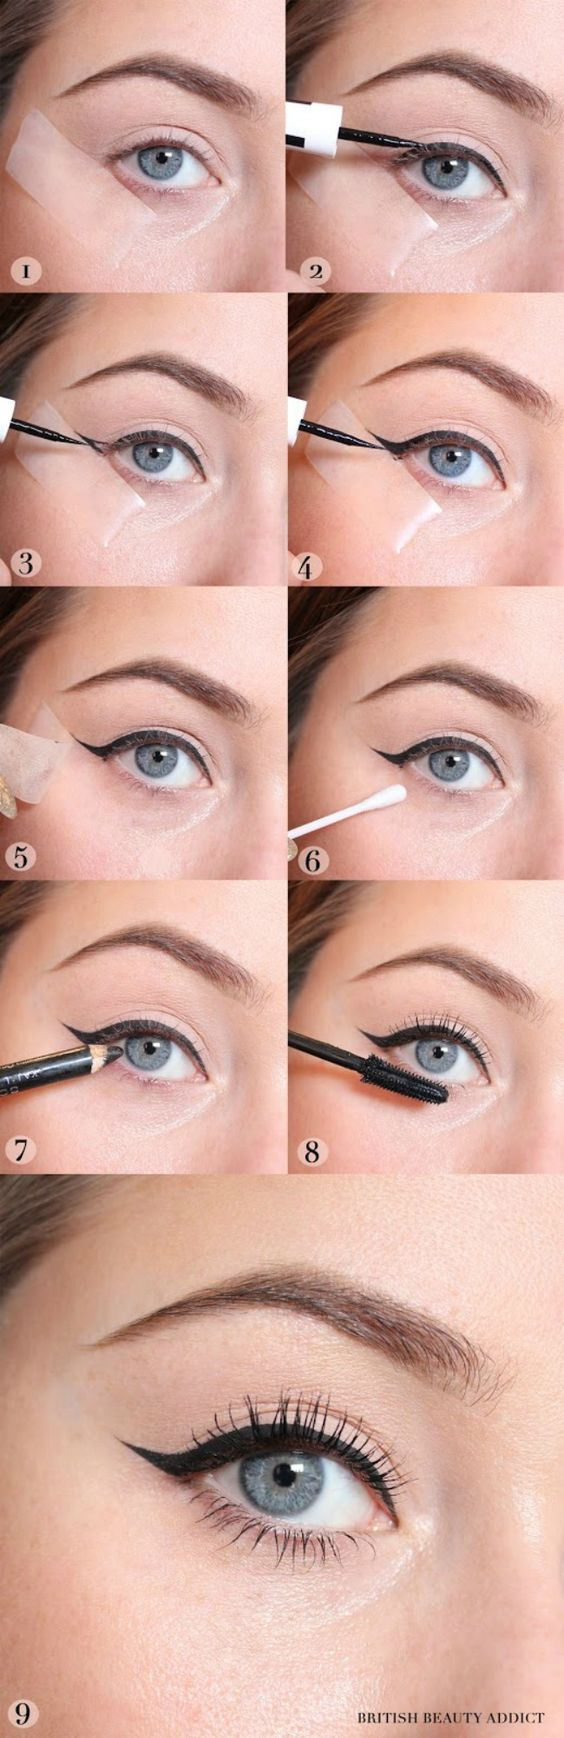 The 11 Best Eye Makeup Tips and Tricks | Winged Eyeliner Trick Using Tape: